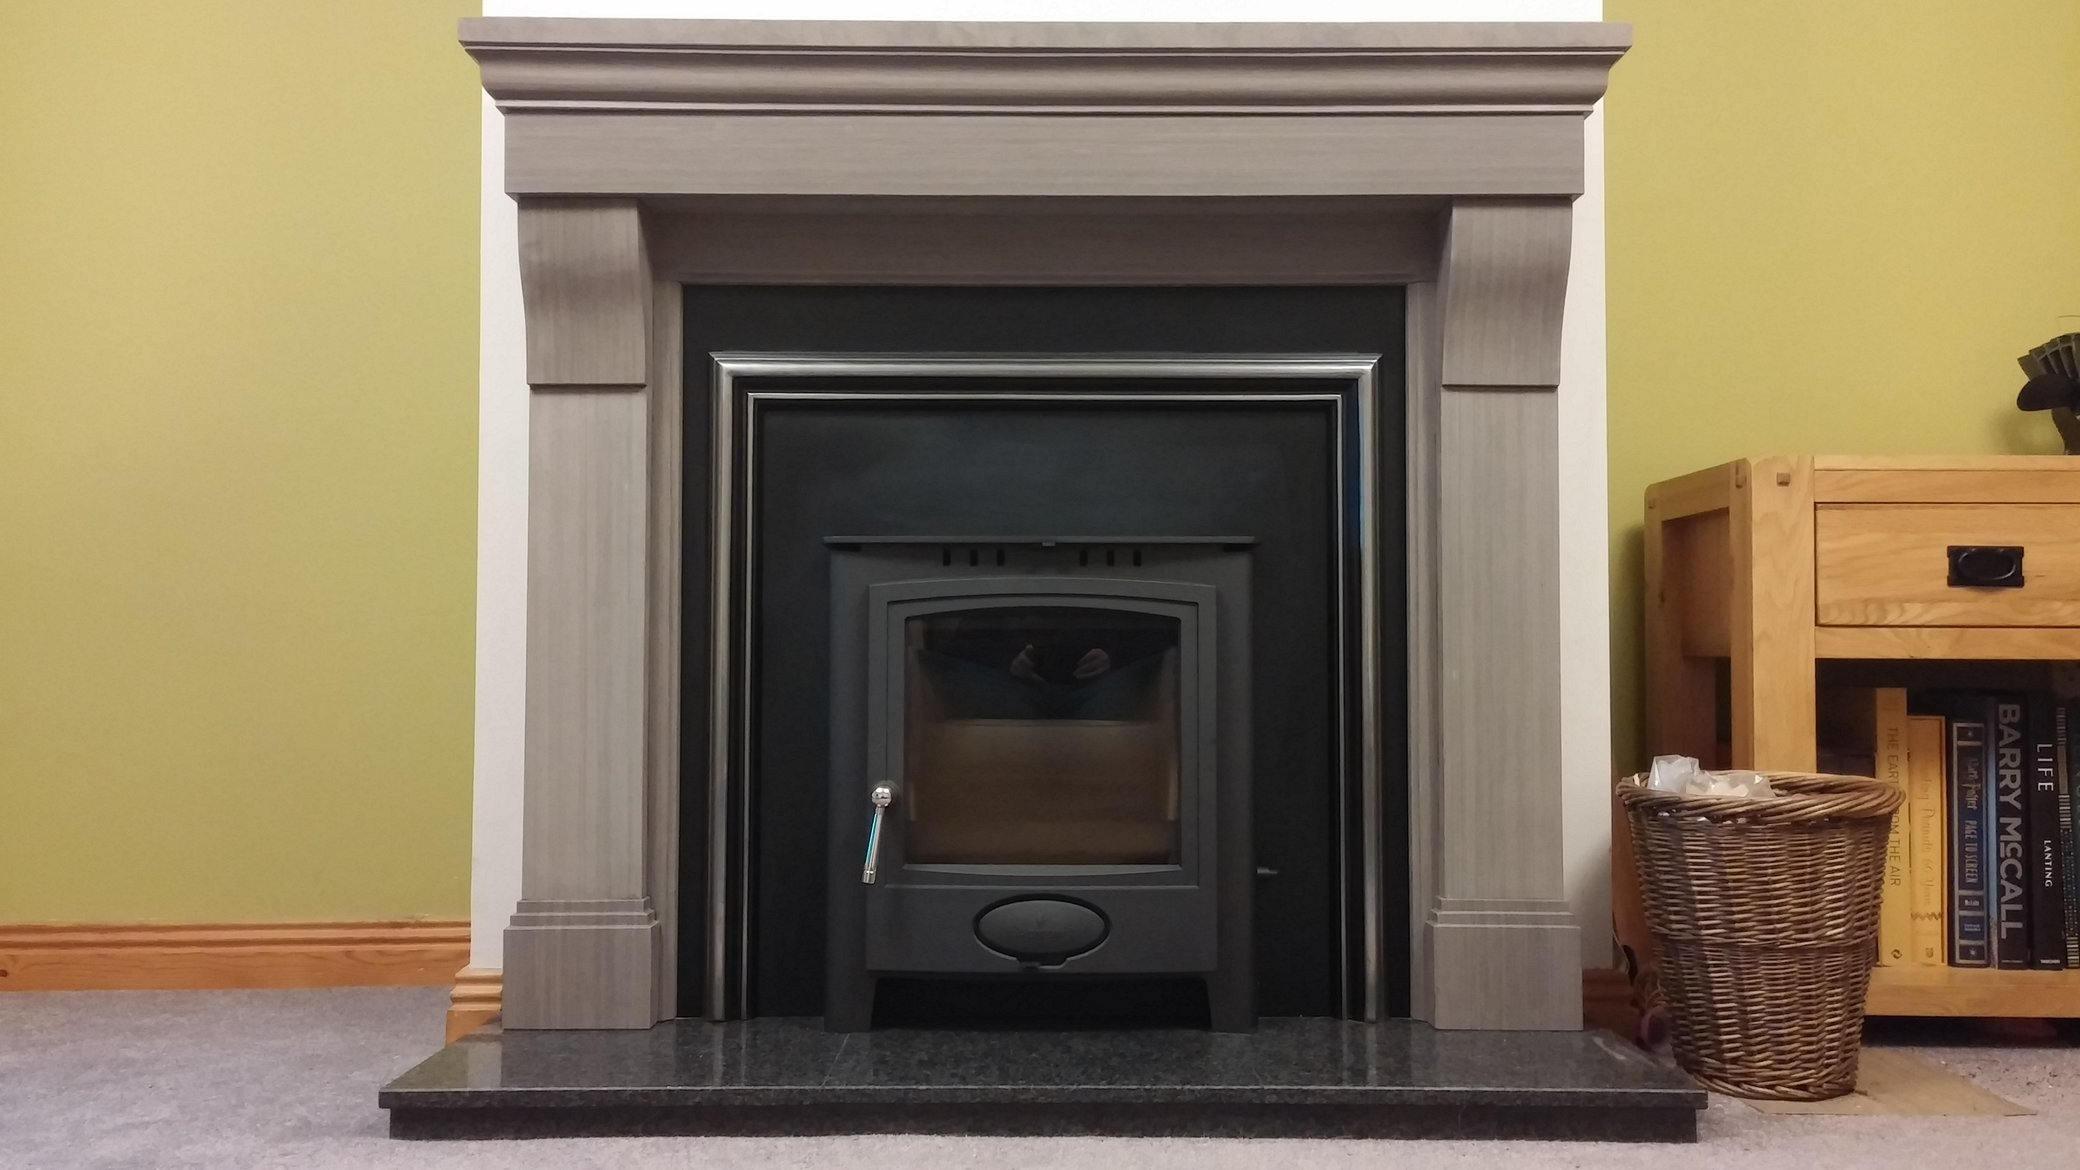 Aarrow 7 Inset in Cabra Sienna Stove fireplace & Aspen plate